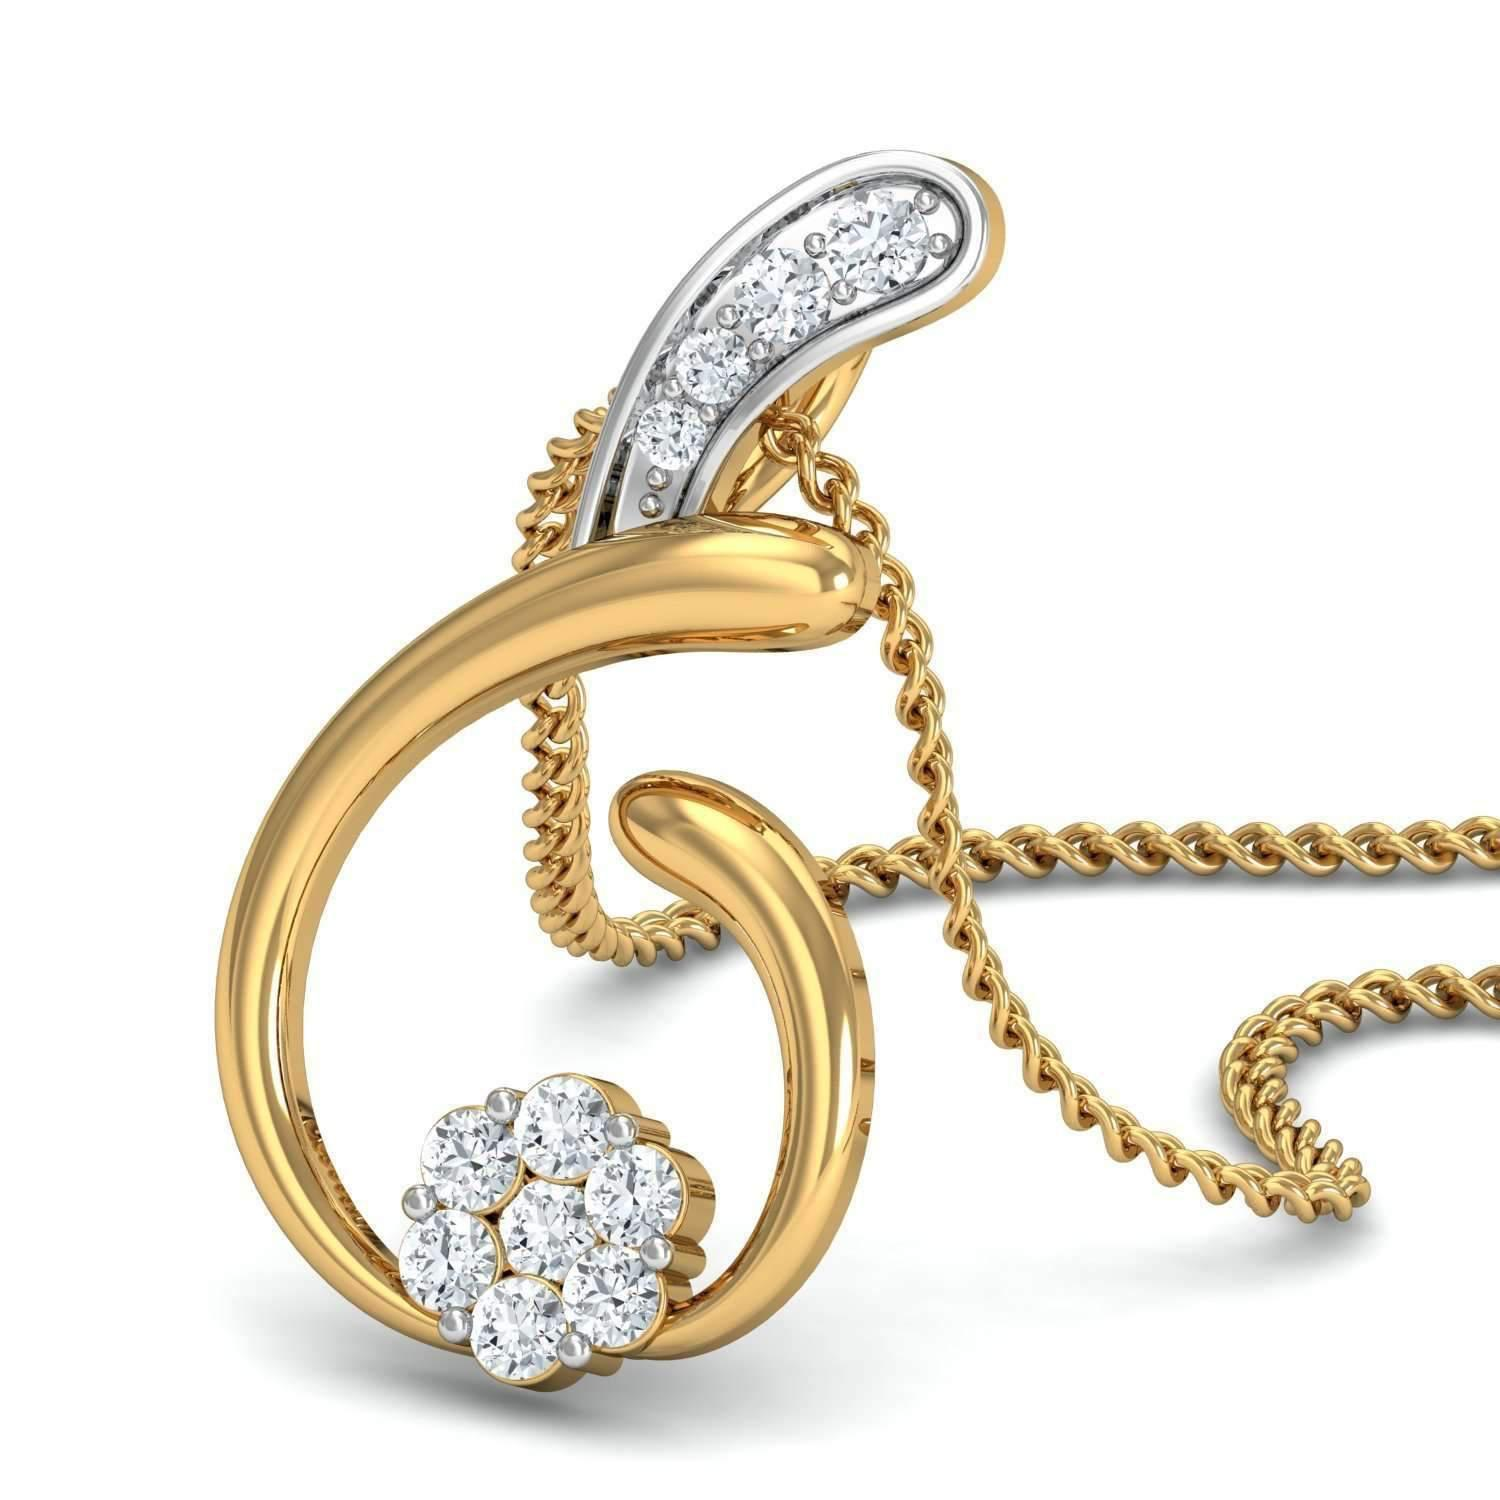 Diamoire Jewels Hand-carved 14kt Yellow Gold Nature Inspired Diamond Pave Pendant ioBlhO